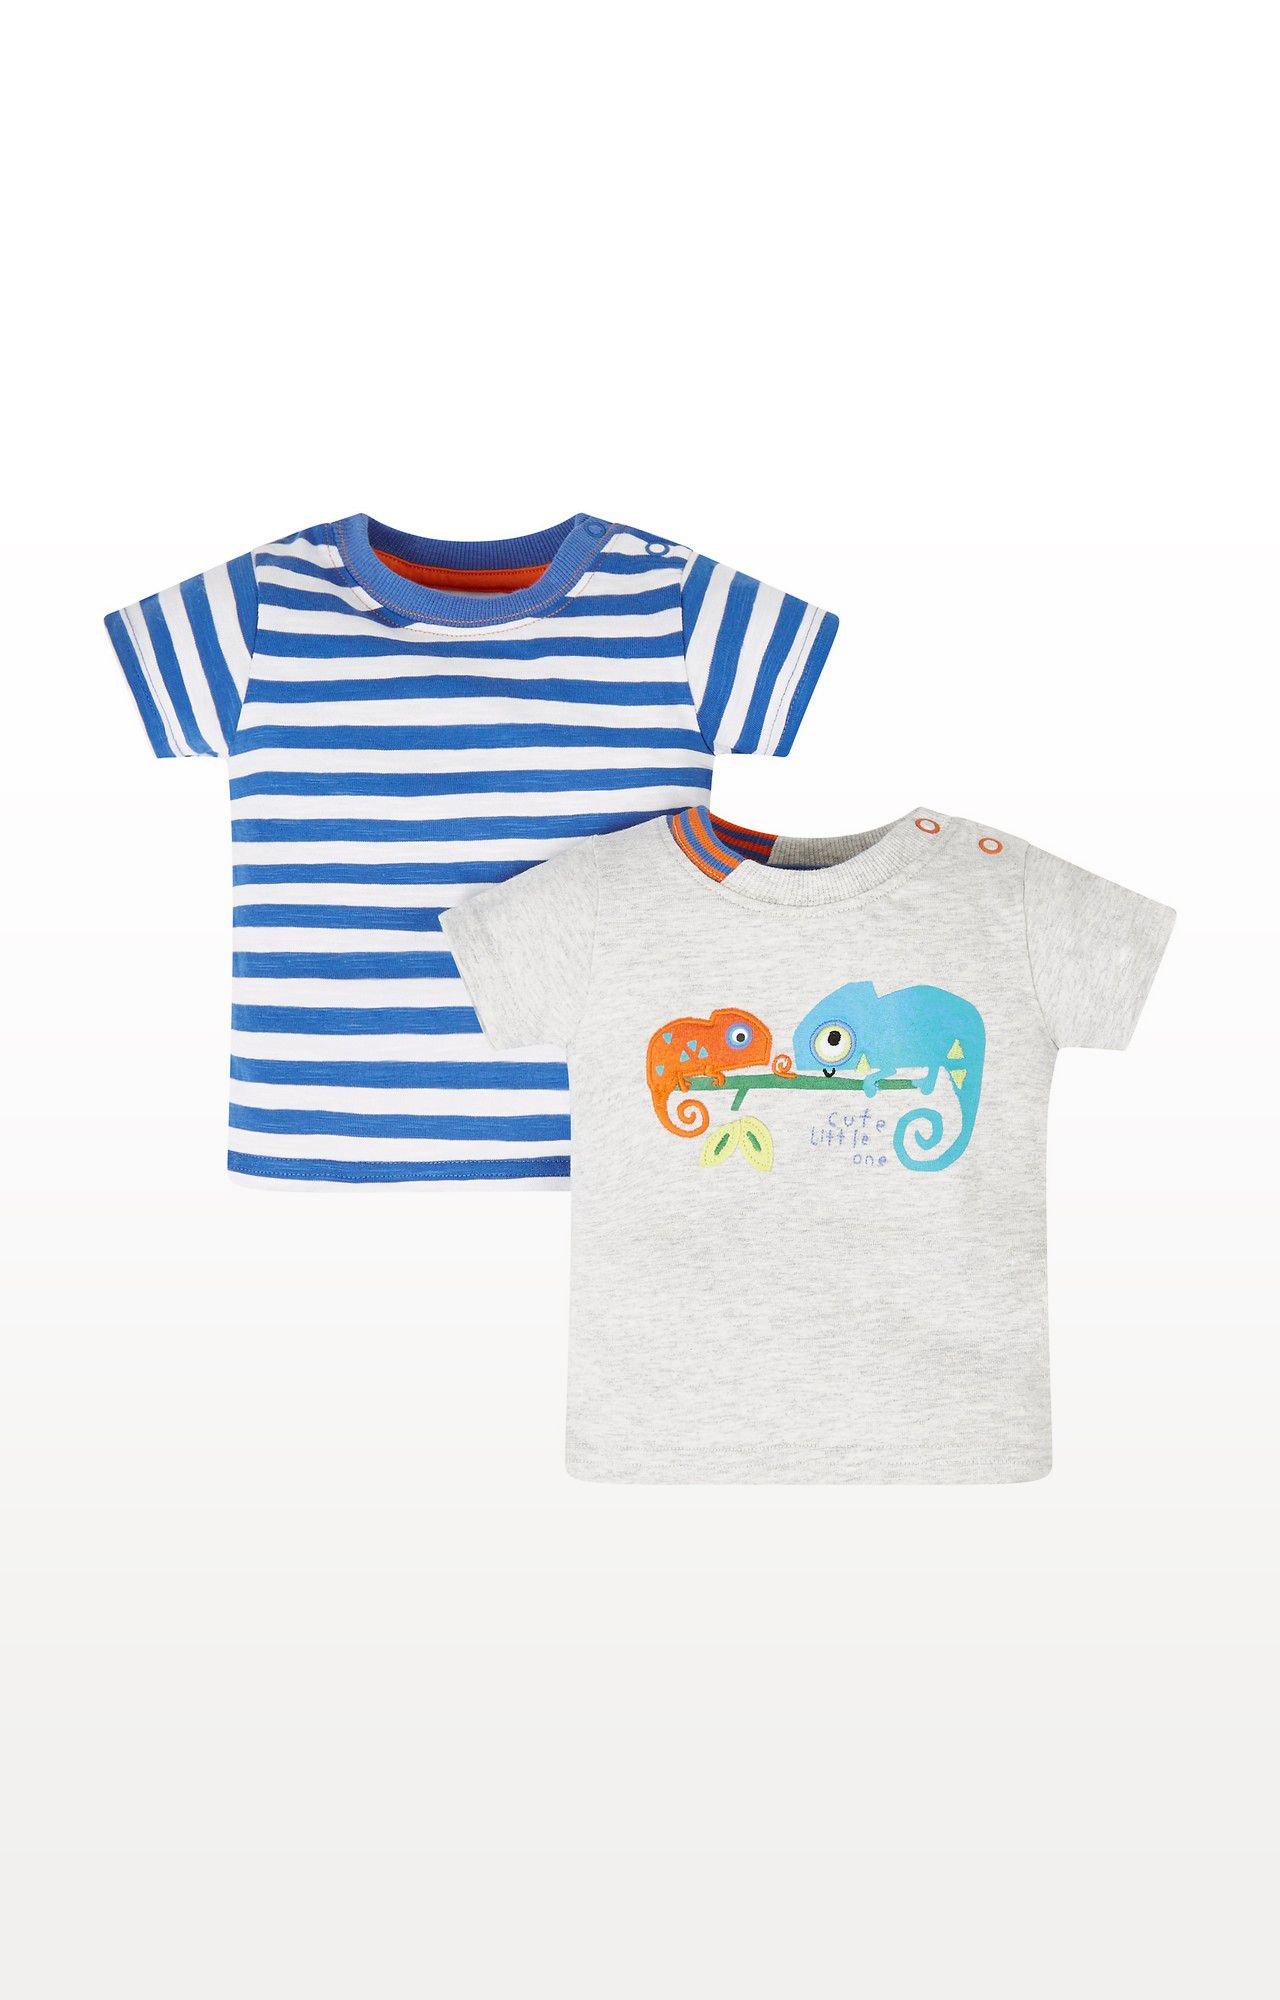 Mothercare | Blue and Grey Striped Chameleon T-Shirts - Pack of 2